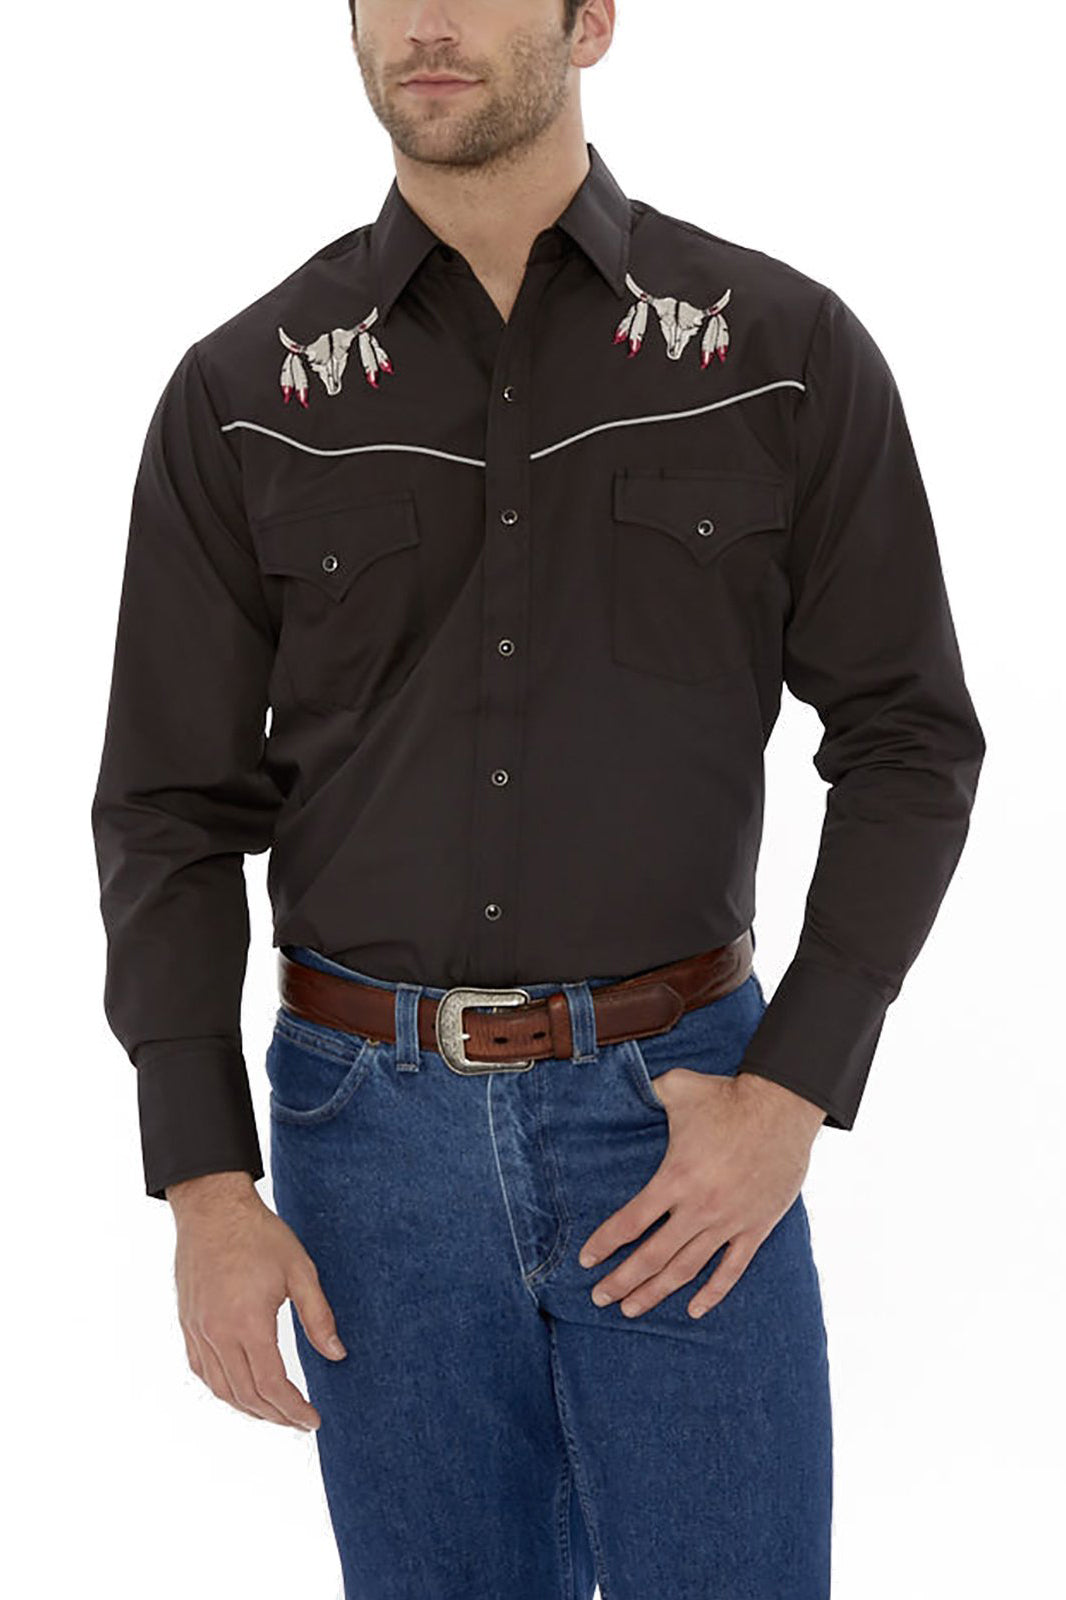 Men's Long Sleeve Western Shirt with Cow Skull Embroidery in Black | Ely Cattleman